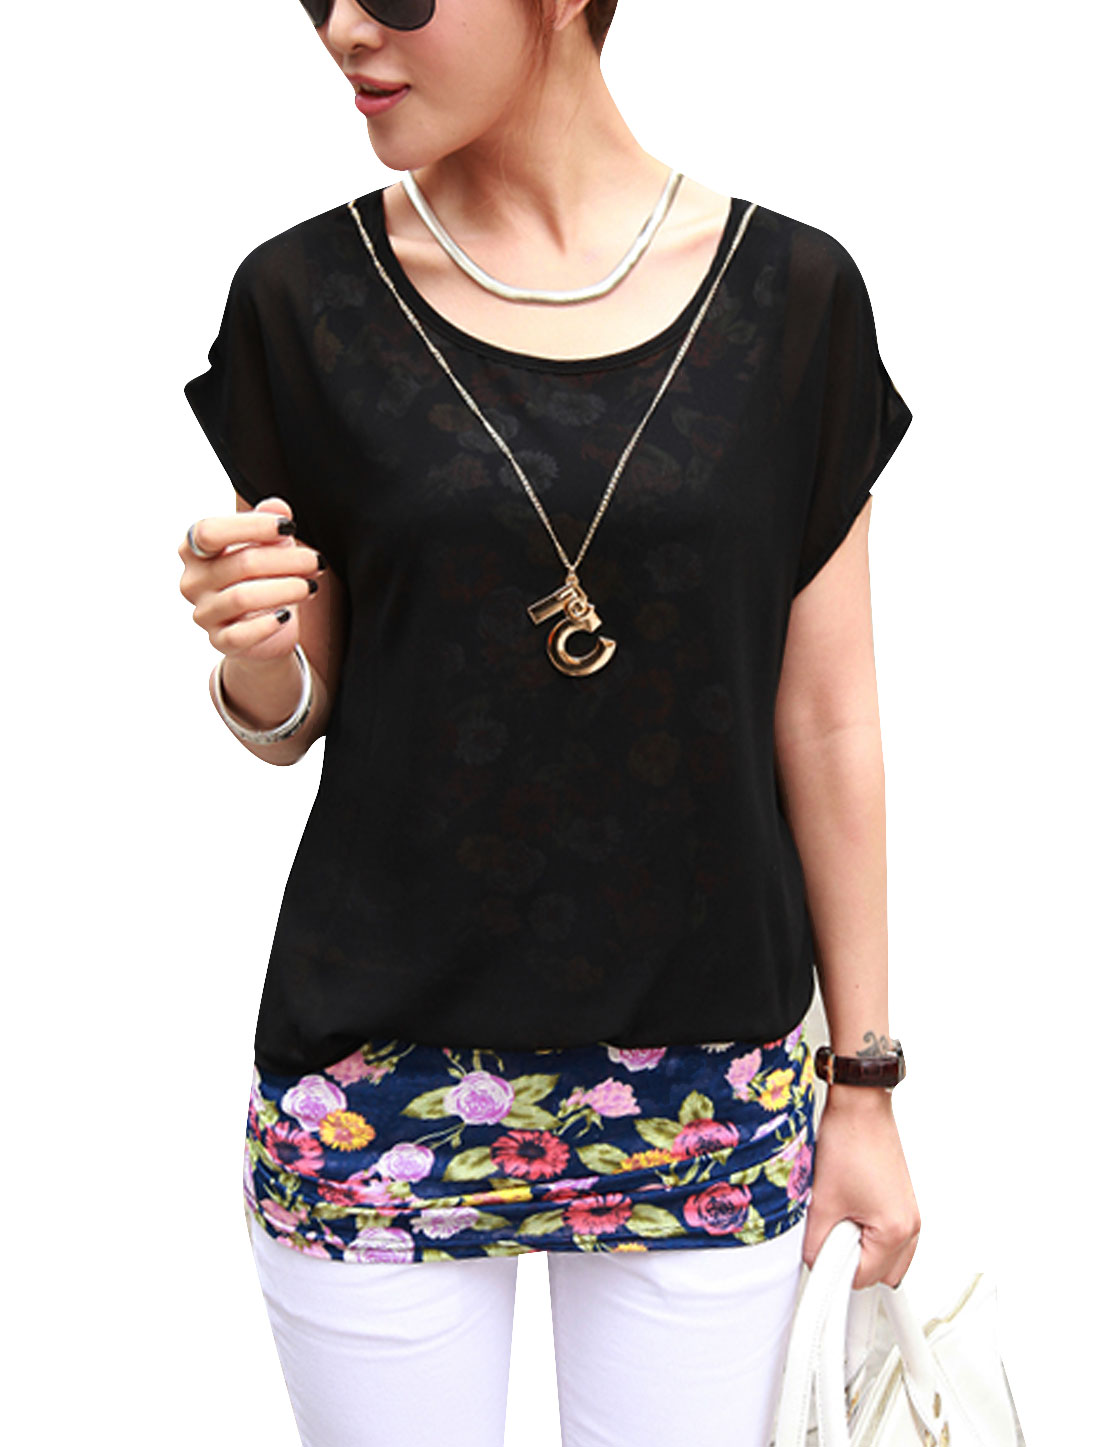 Lady Fake Two-Piece Floral Prints Tunic Top w Necklace Black S